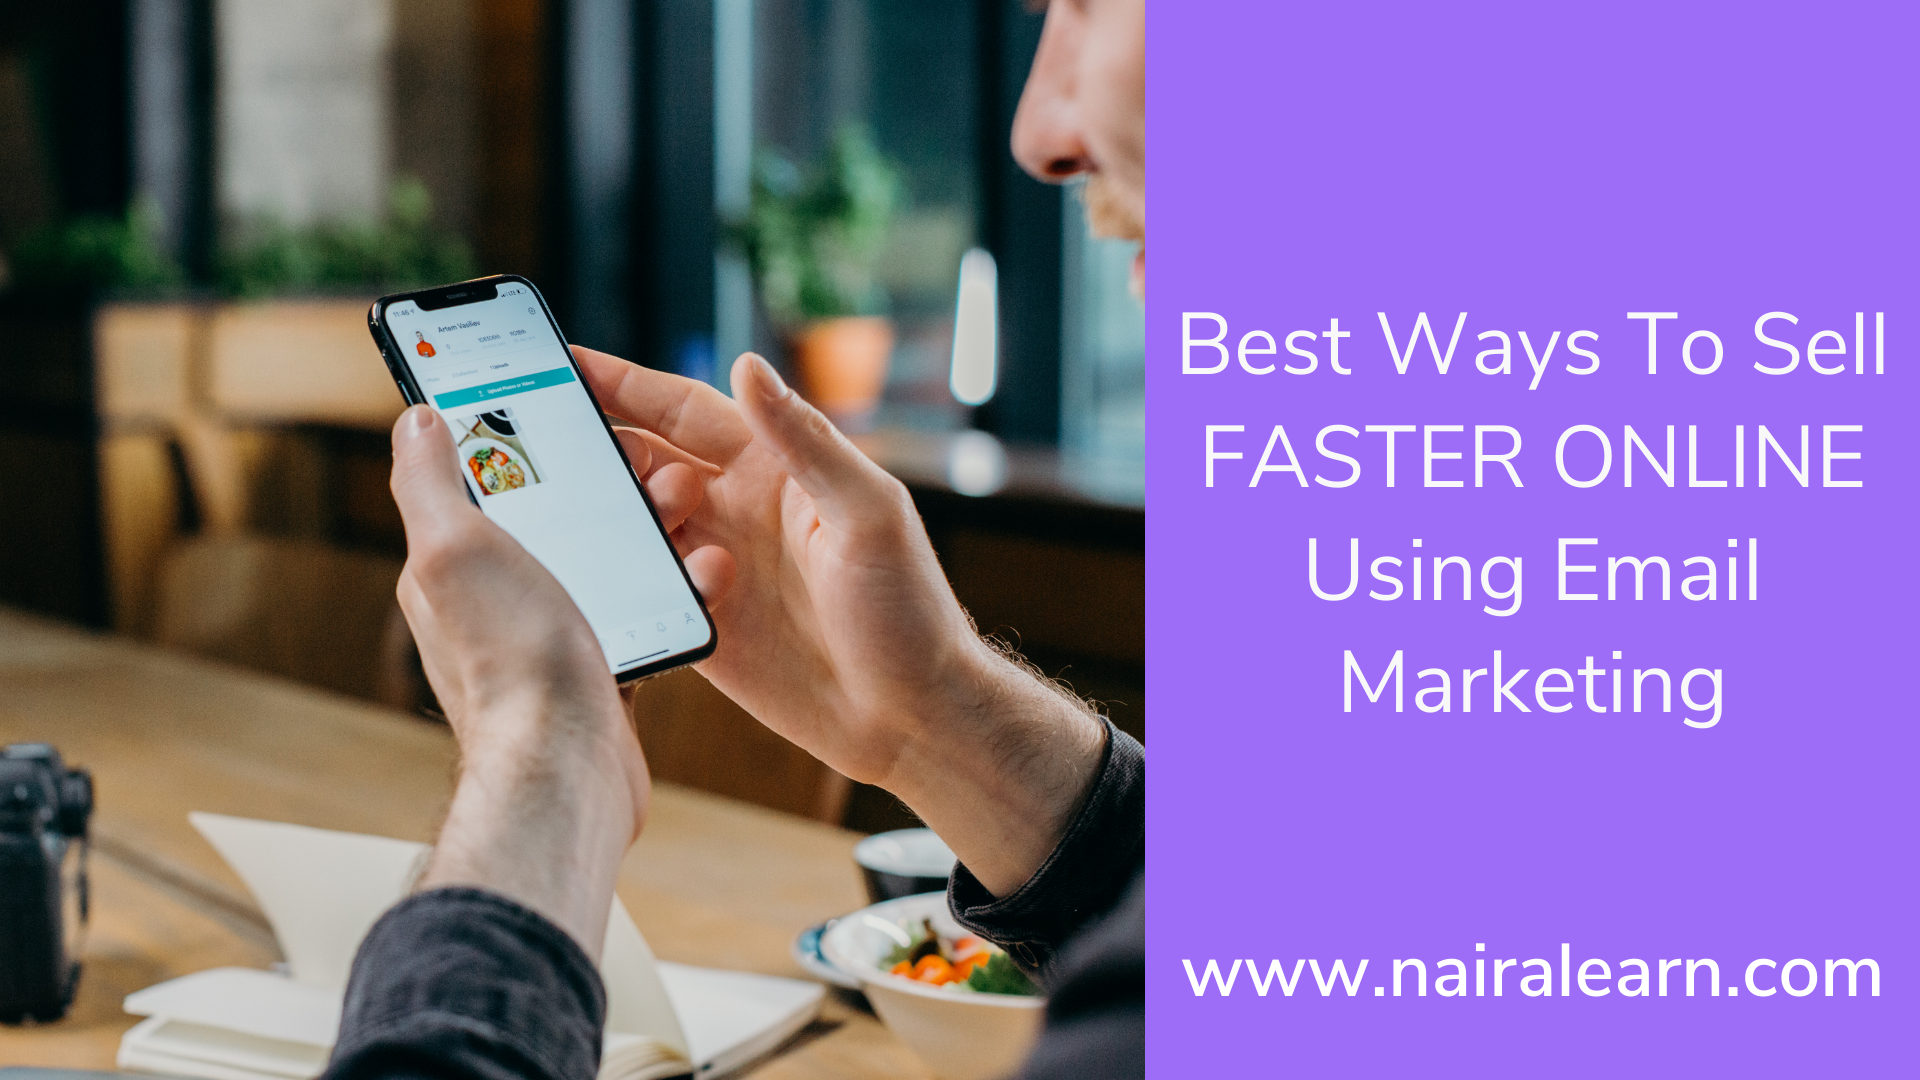 Best-Ways-To-Sell-FASTER-ONLINE-Using-Email-Marketing